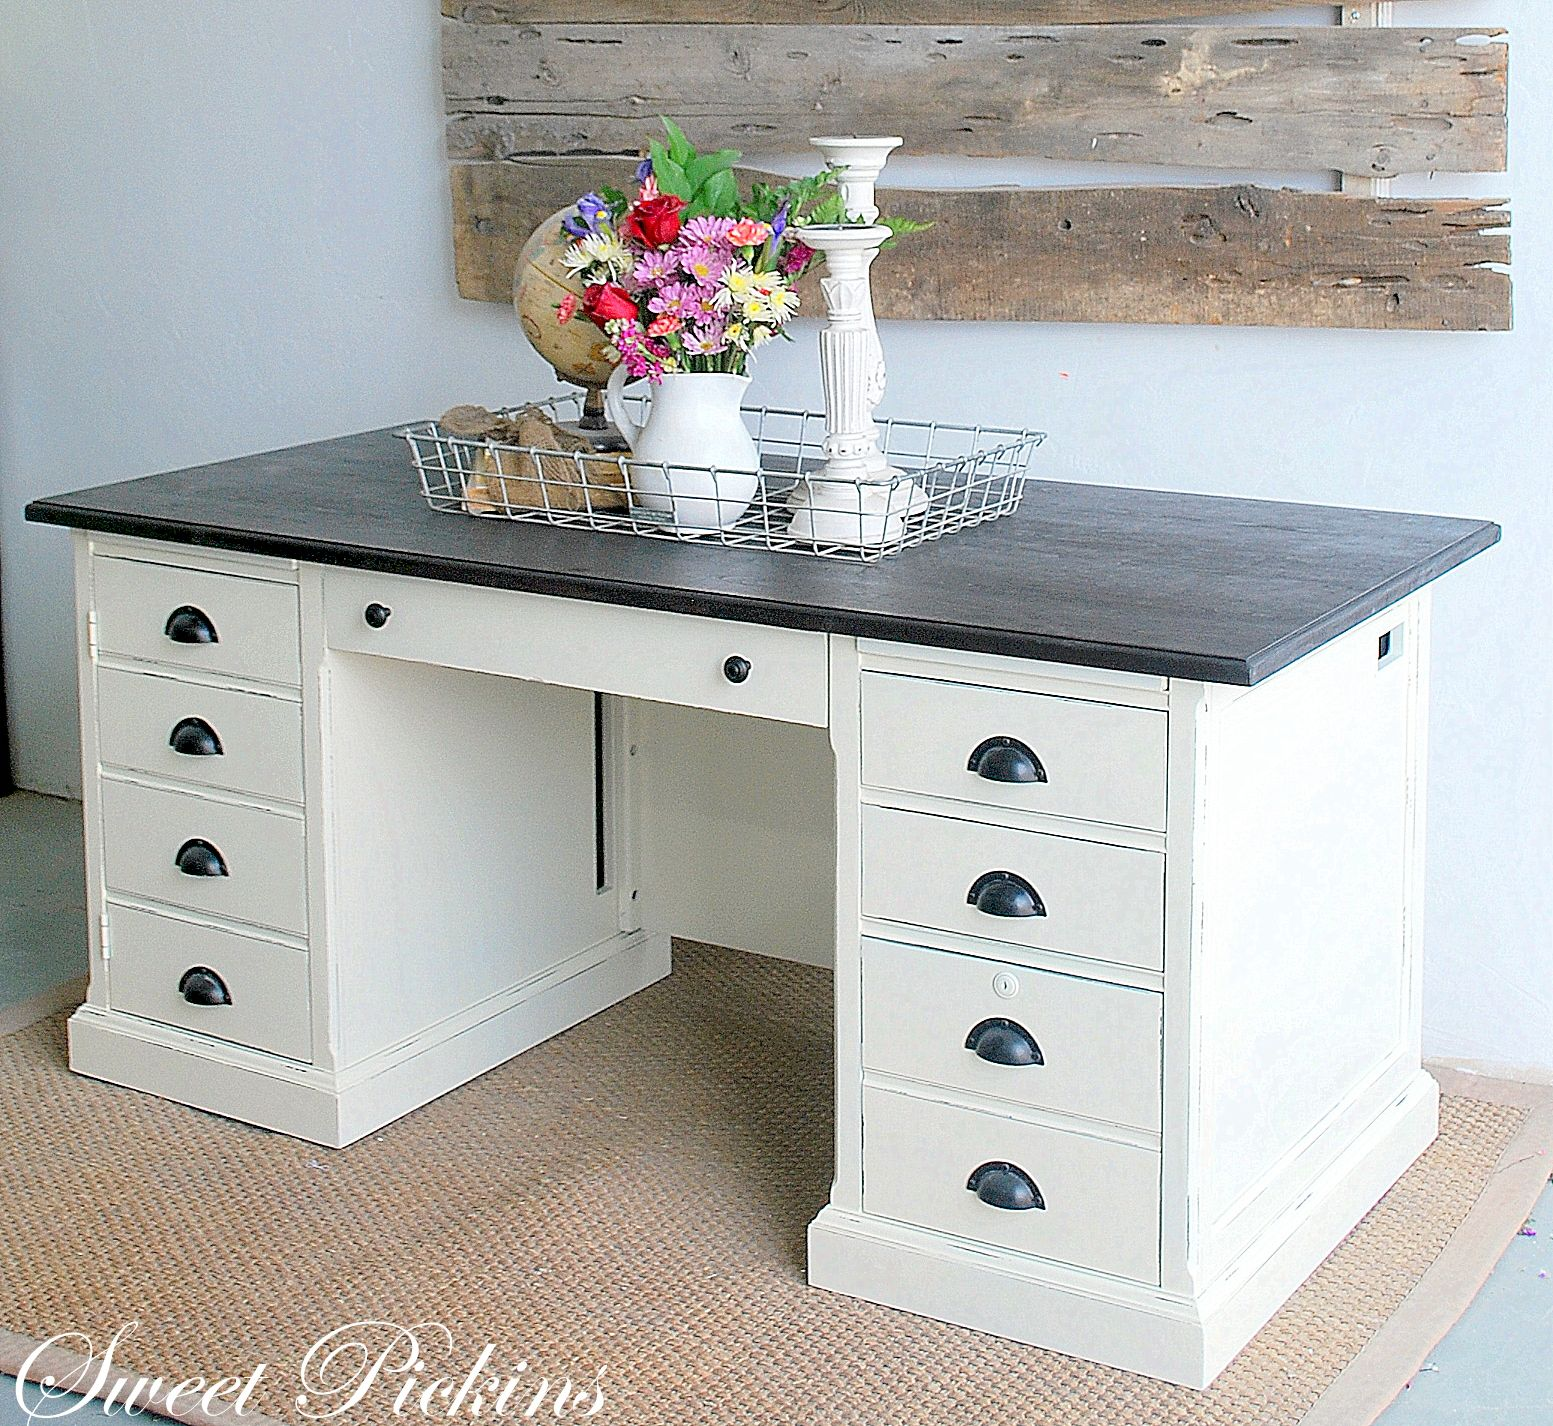 I Have A Desk That Looks Like This, I Just Need To Paint